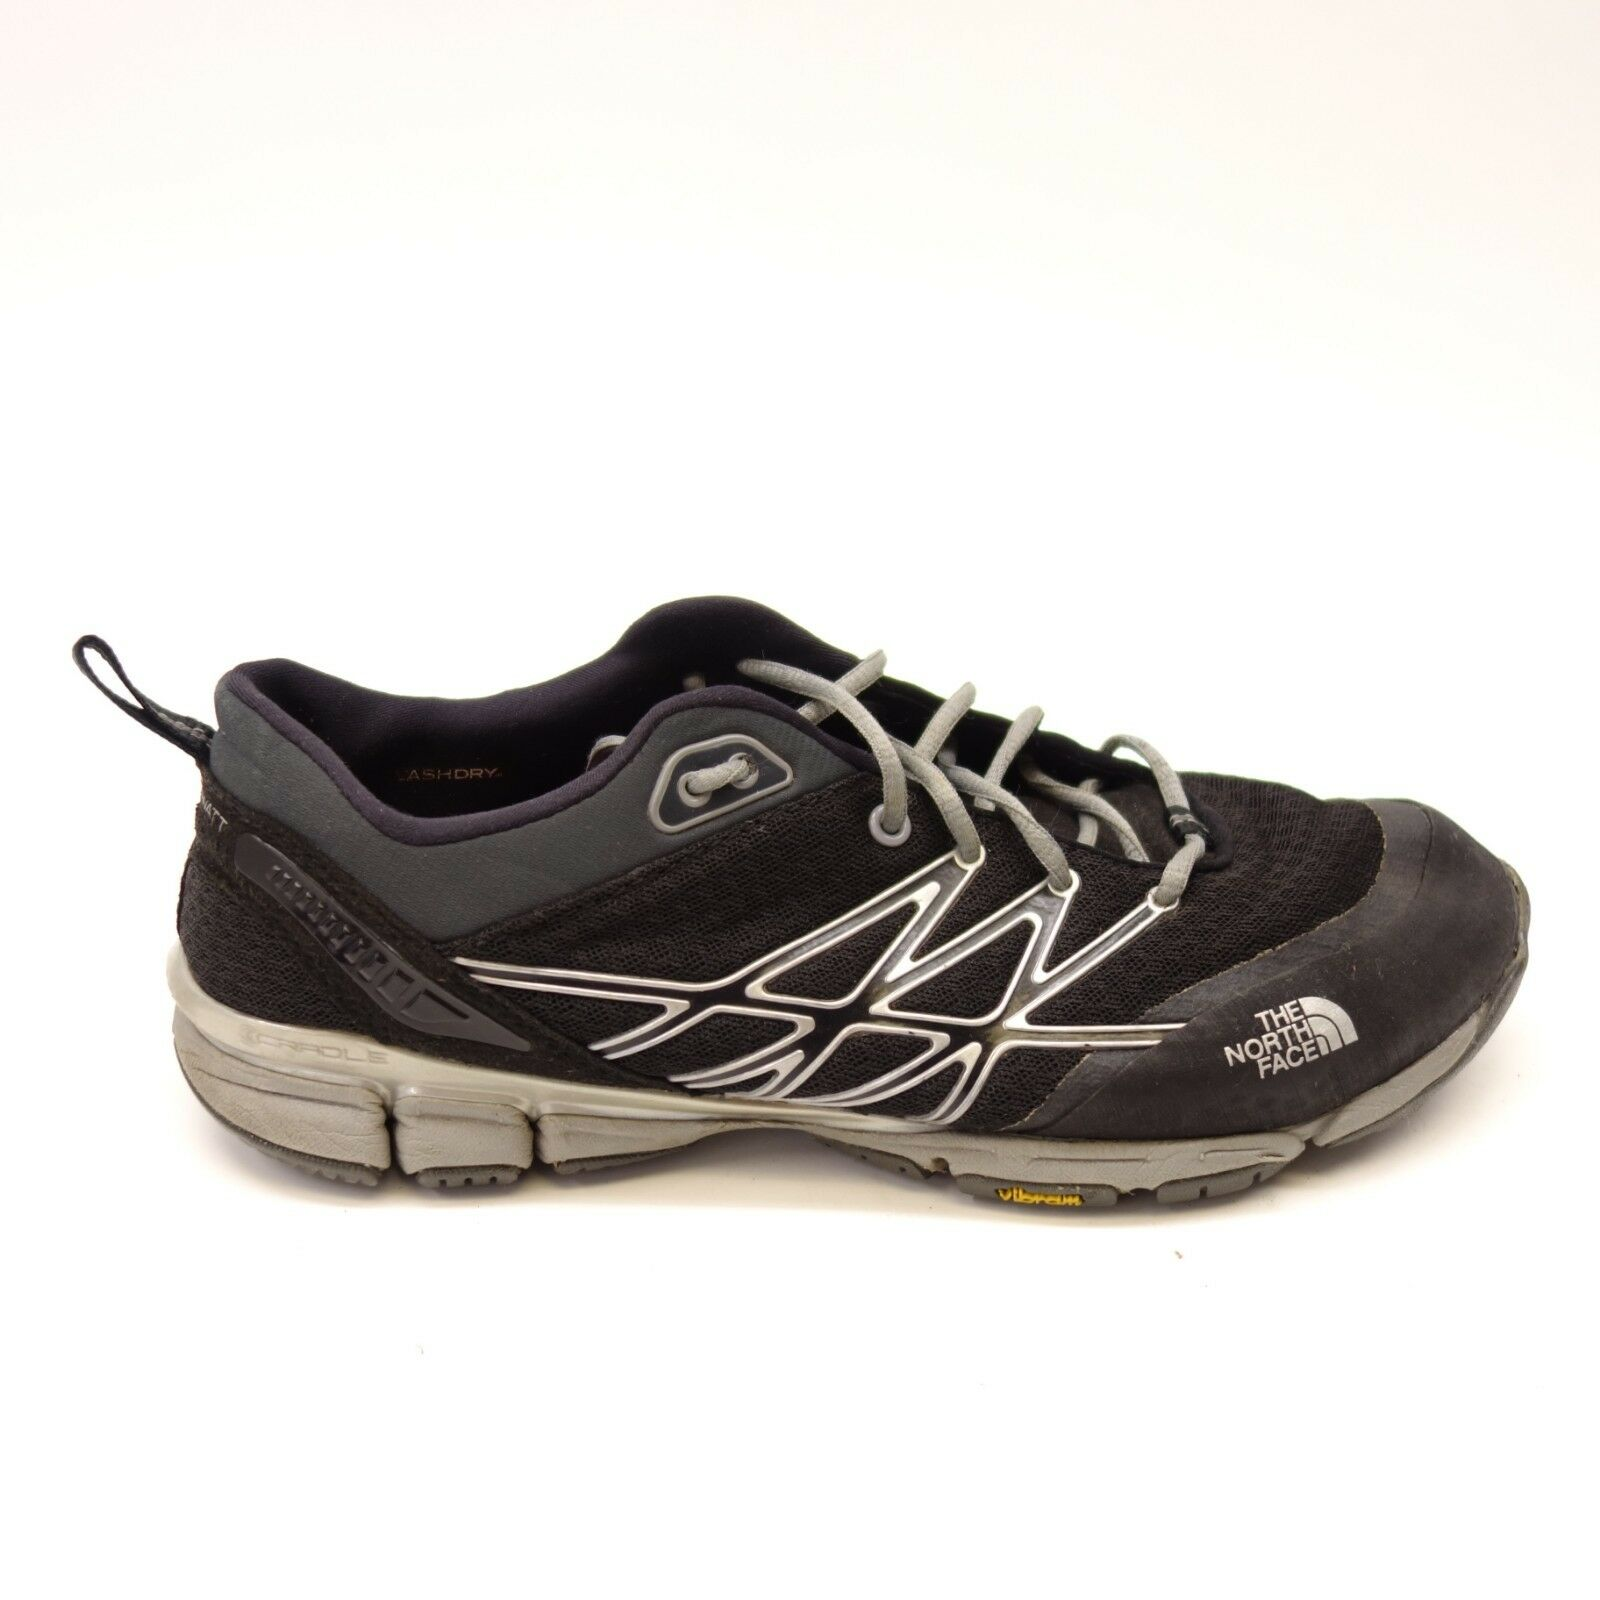 160f7086c The North Face Mens GTX Hedgehog Fastpack Athletic Trail Hiking Shoes Sz 9.5